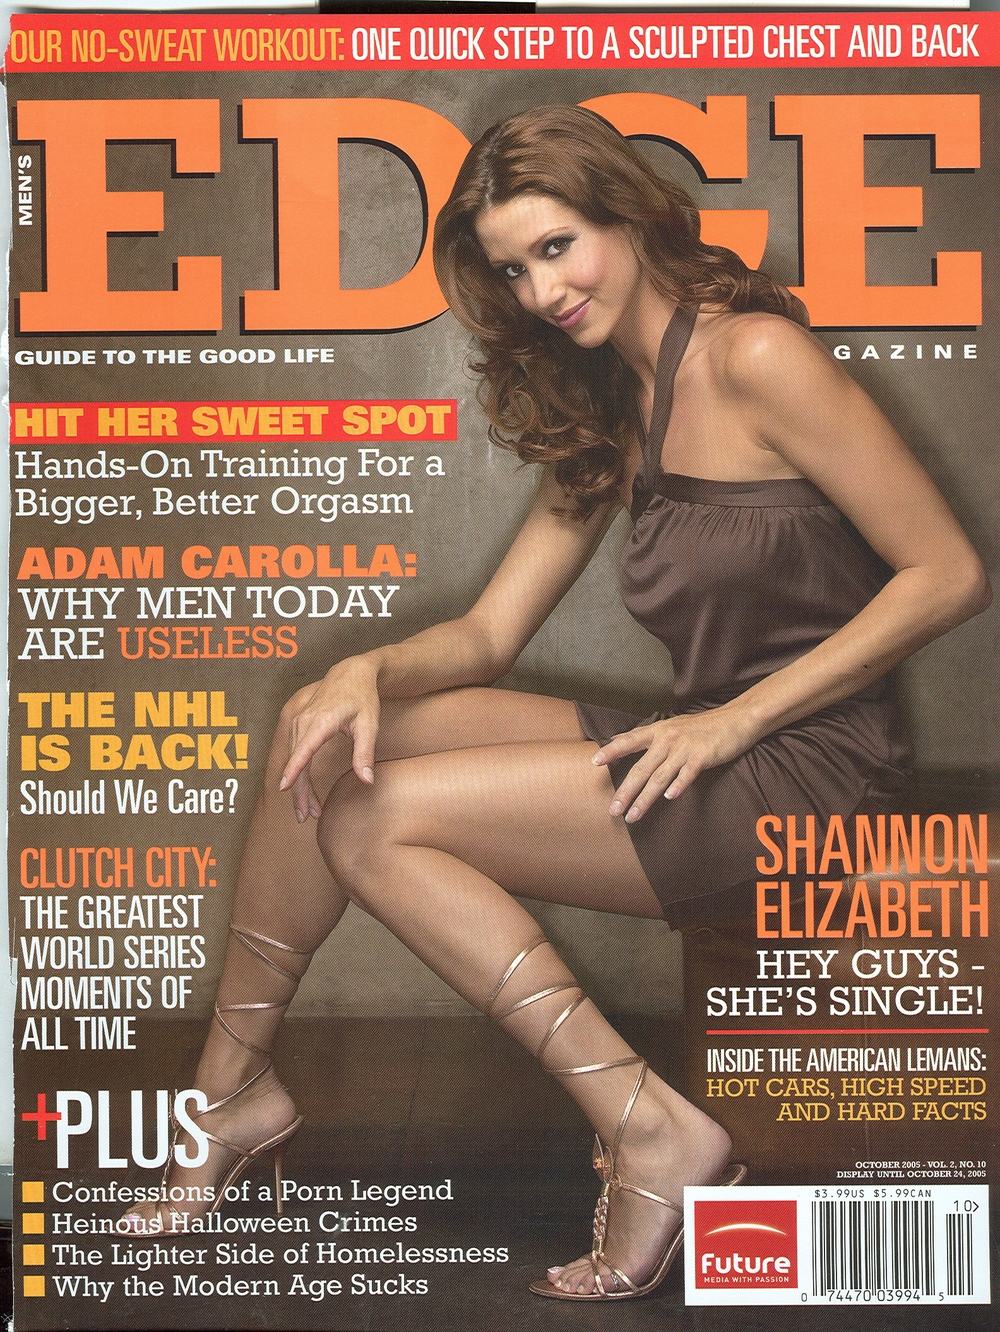 SE_Mens Edge_October 2005 1.jpg